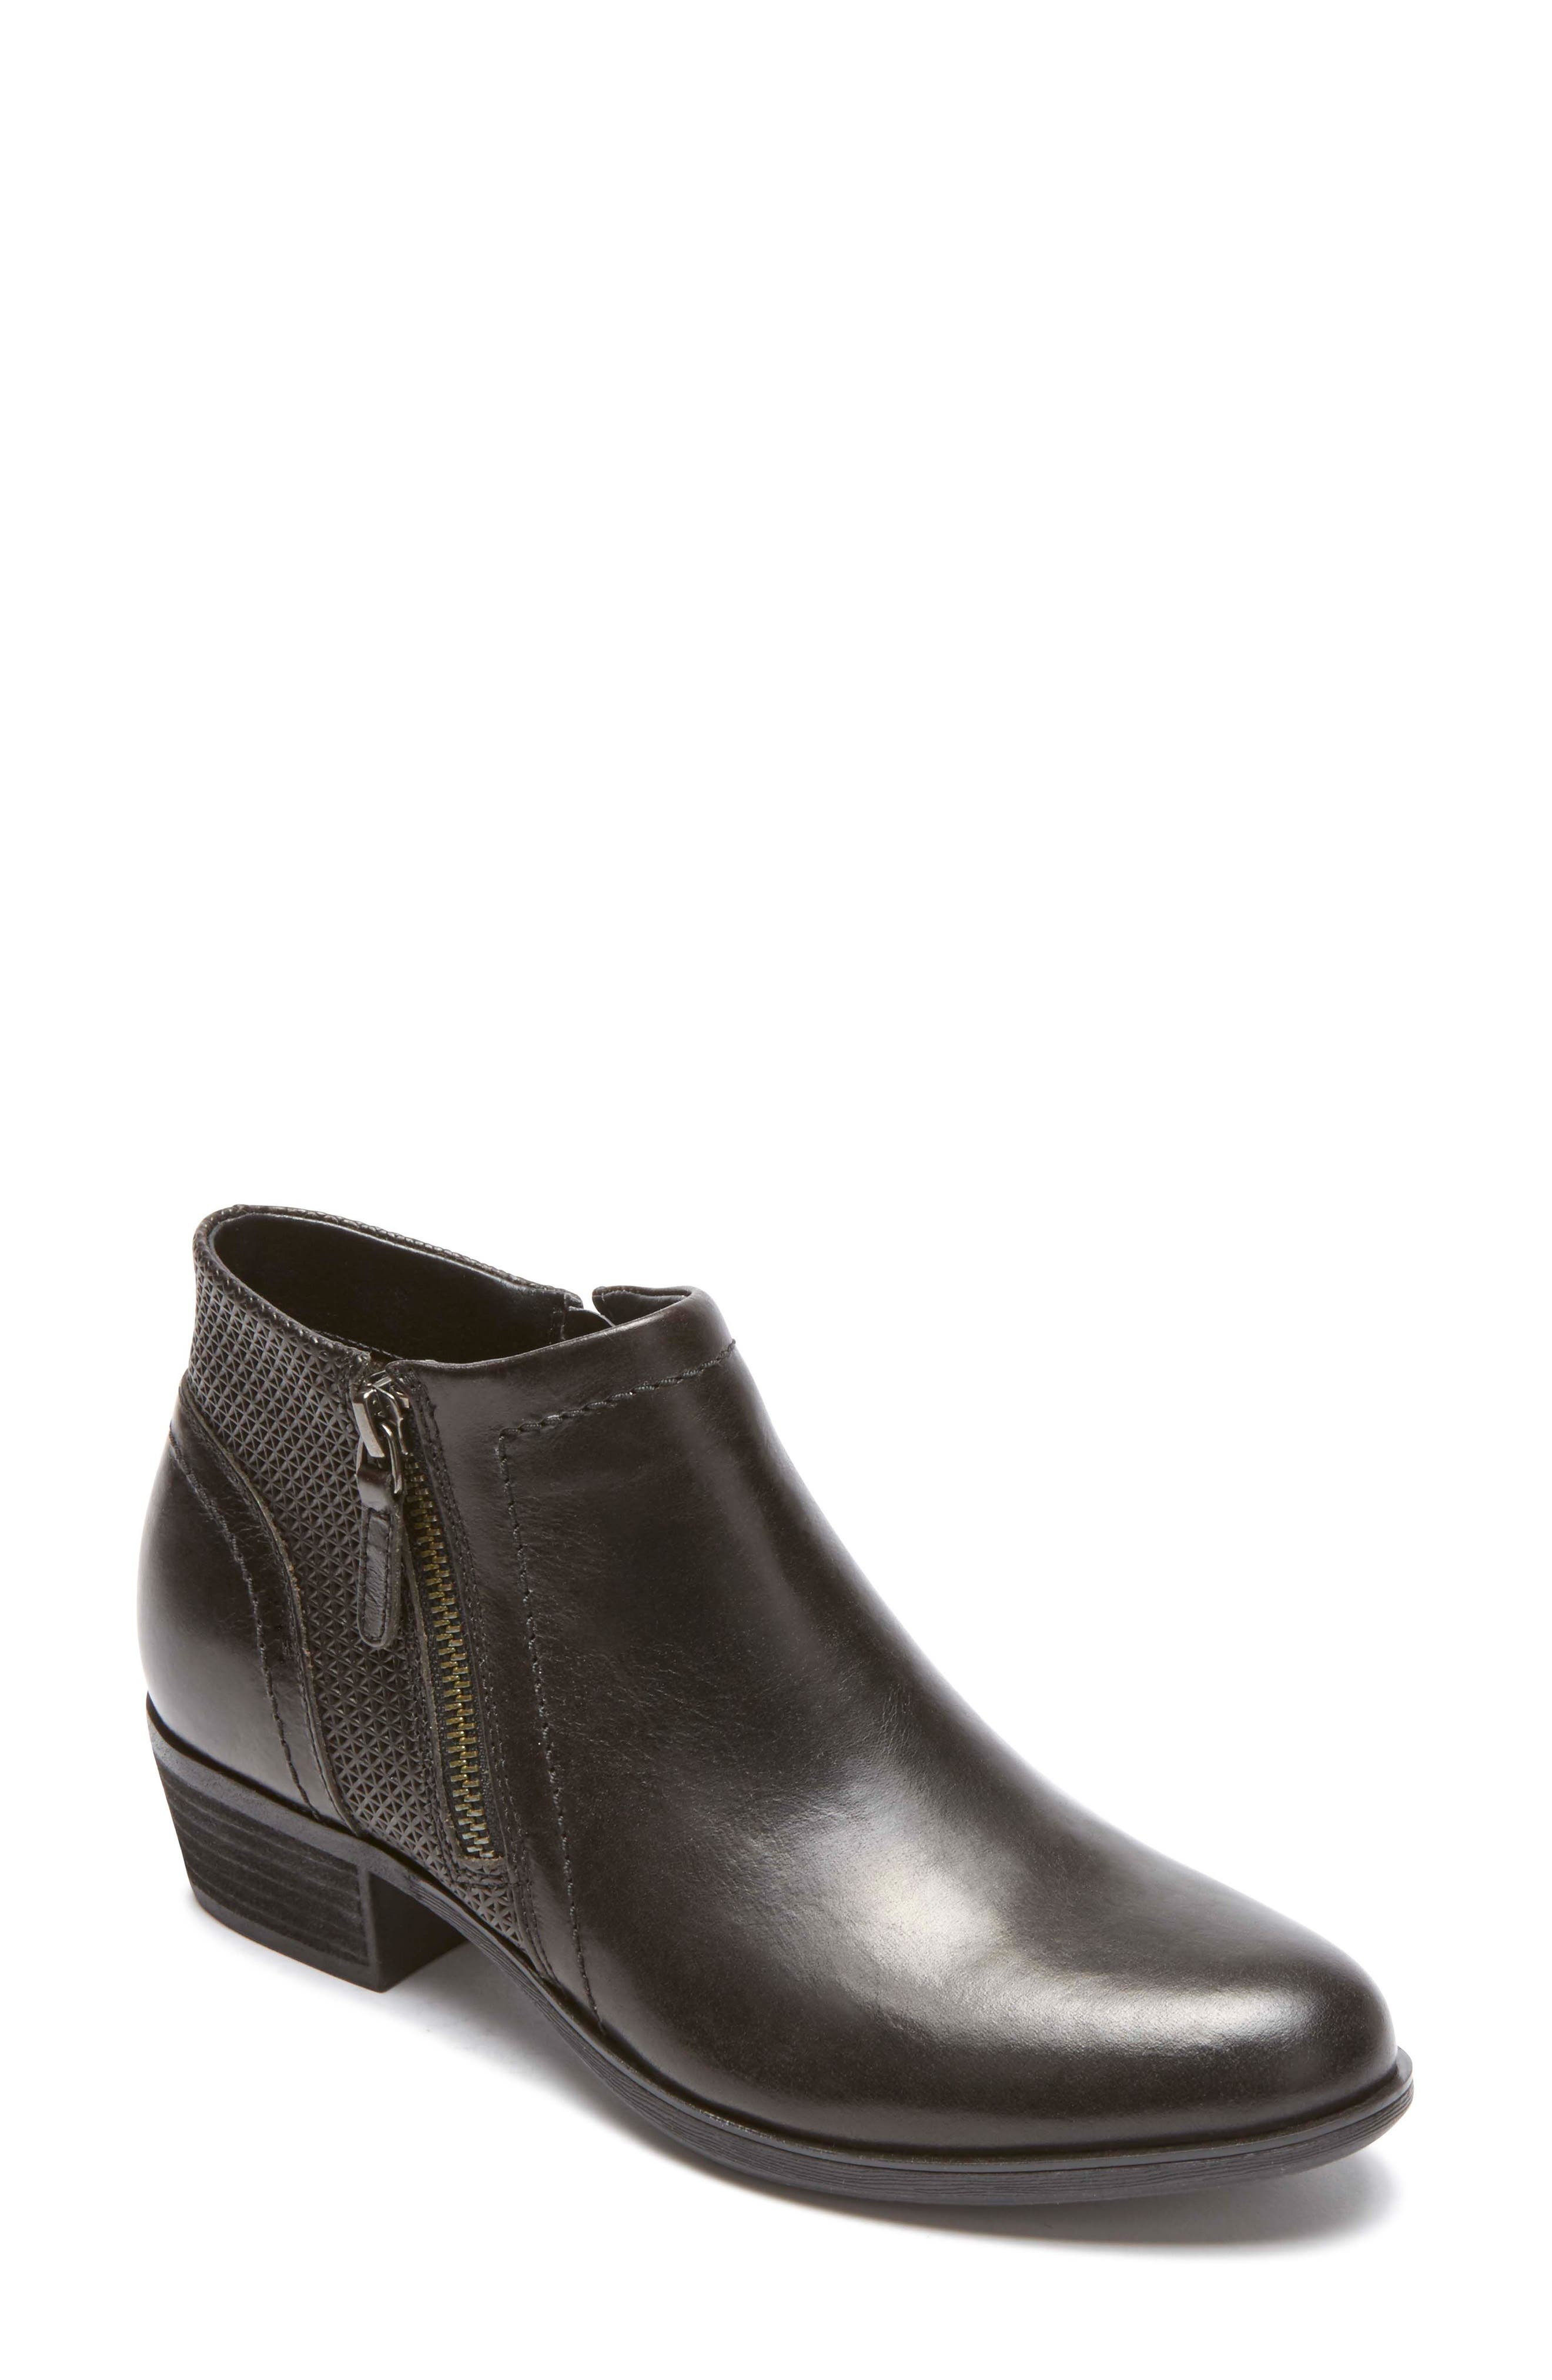 Oliana Bootie,                             Main thumbnail 1, color,                             BLACK LEATHER